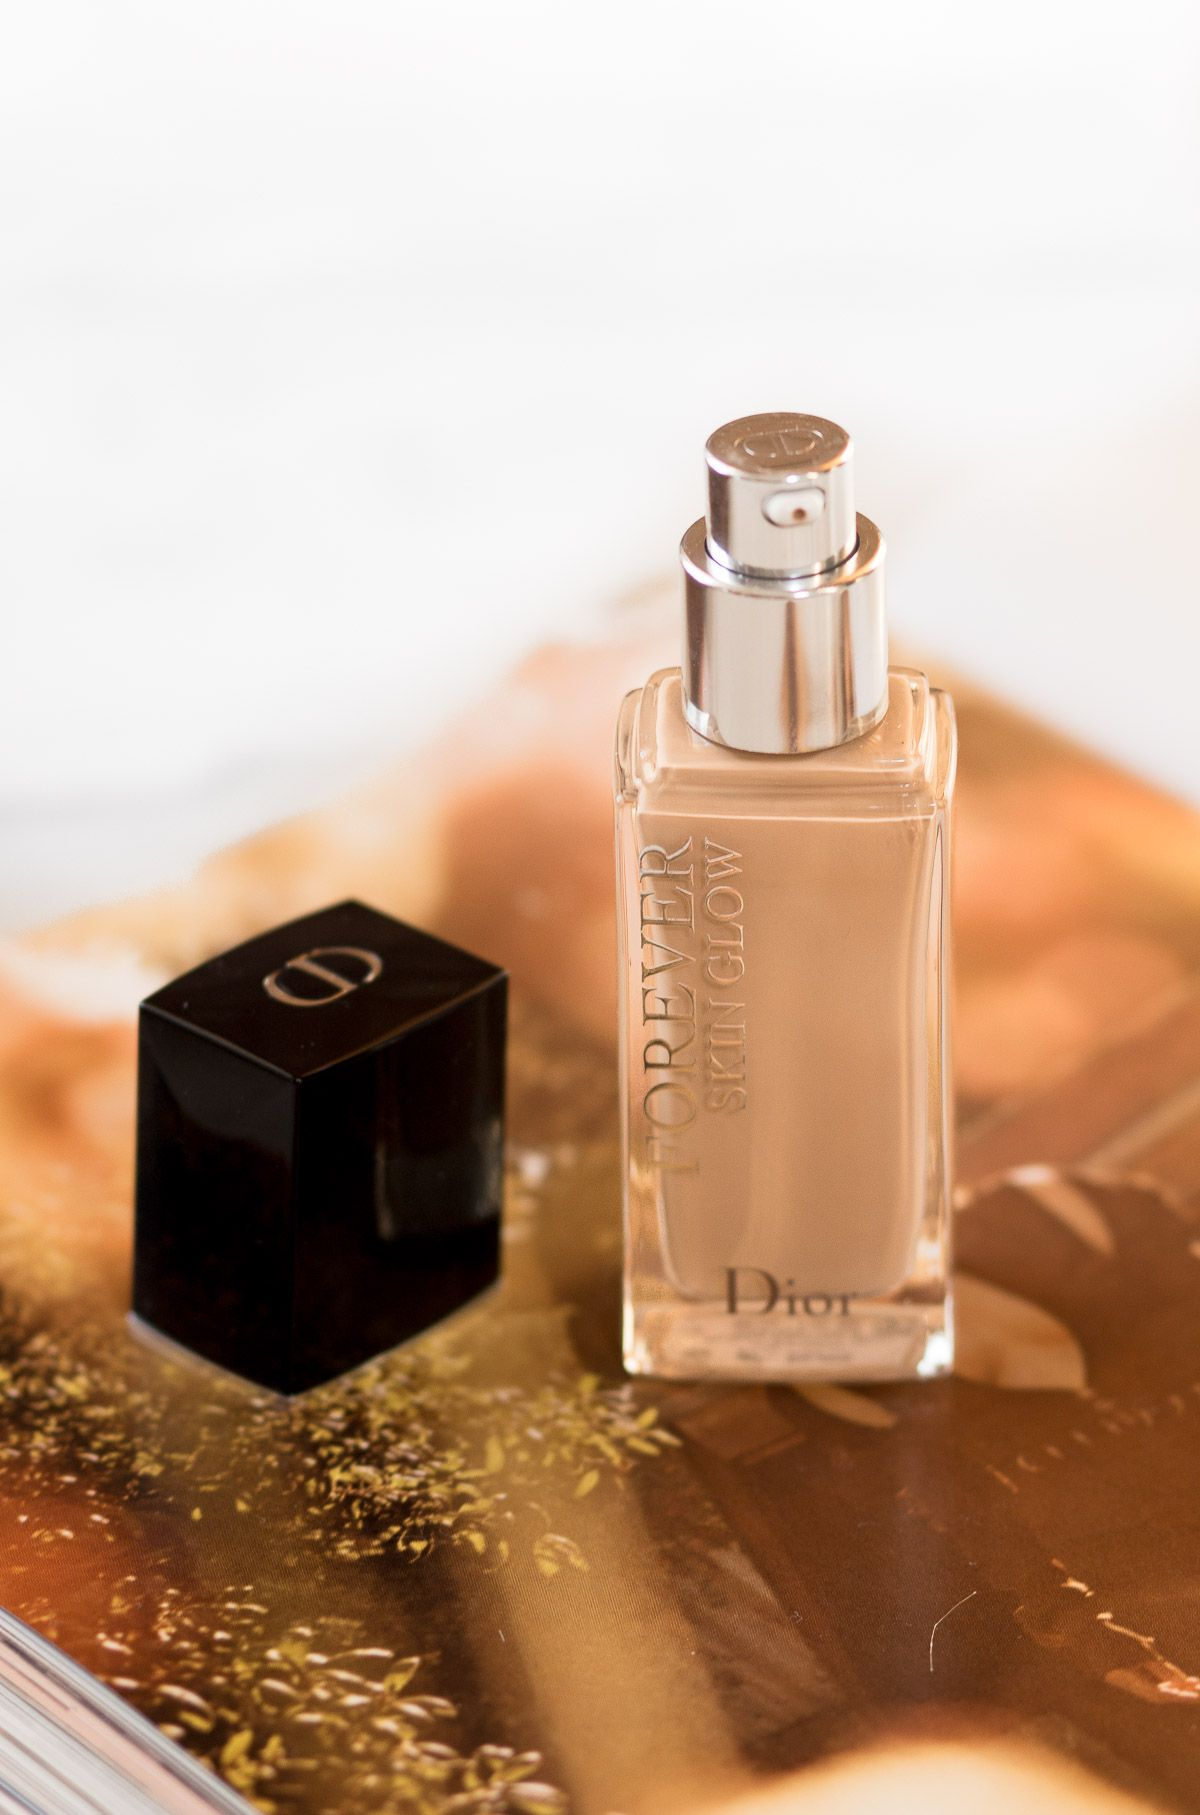 DIOR FOREVER SKIN GLOW FOUNDATION REVIEW (With images